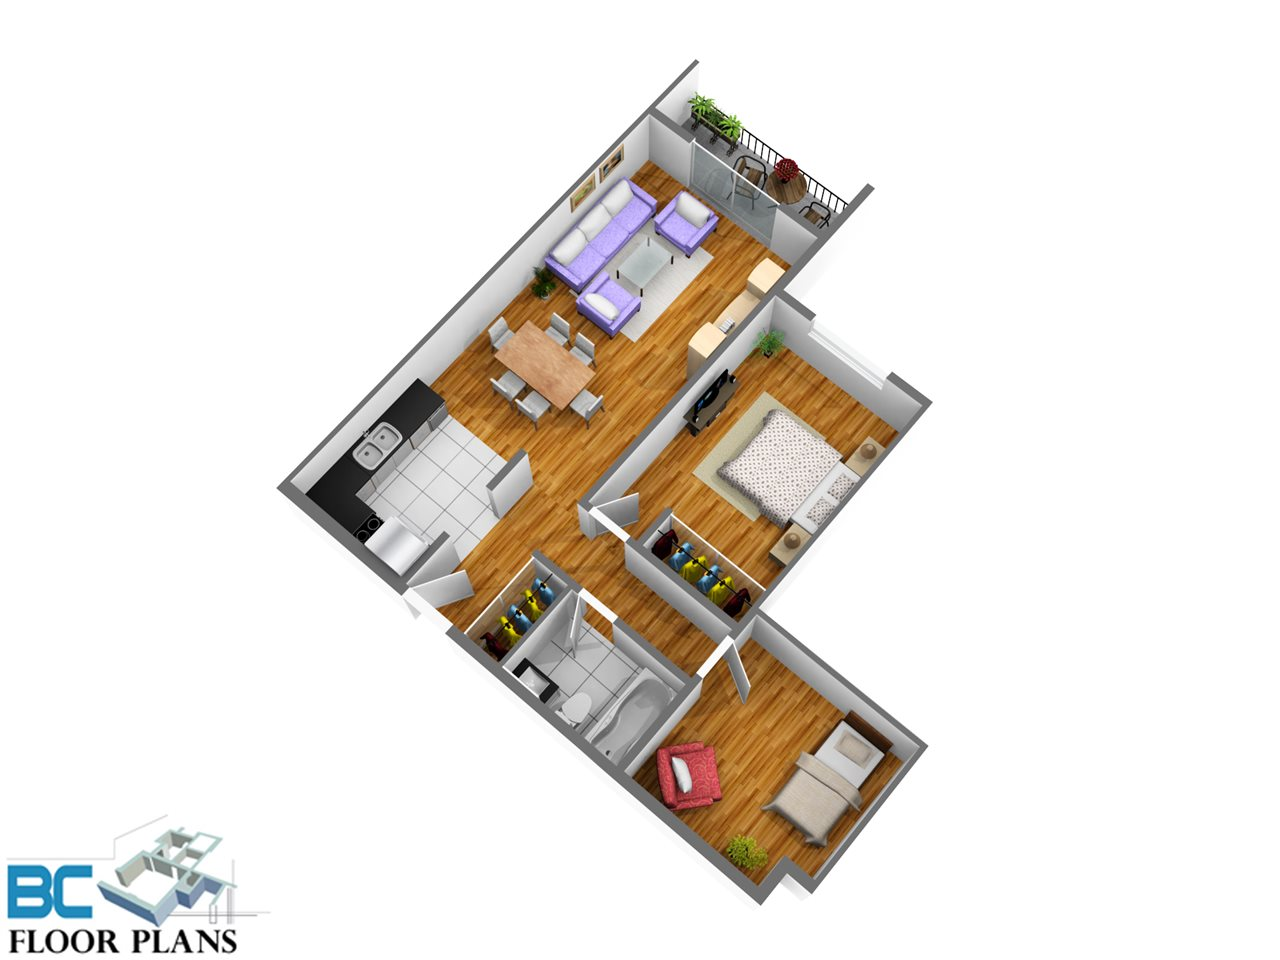 Condo Apartment at 219 1550 BARCLAY STREET, Unit 219, Vancouver West, British Columbia. Image 20